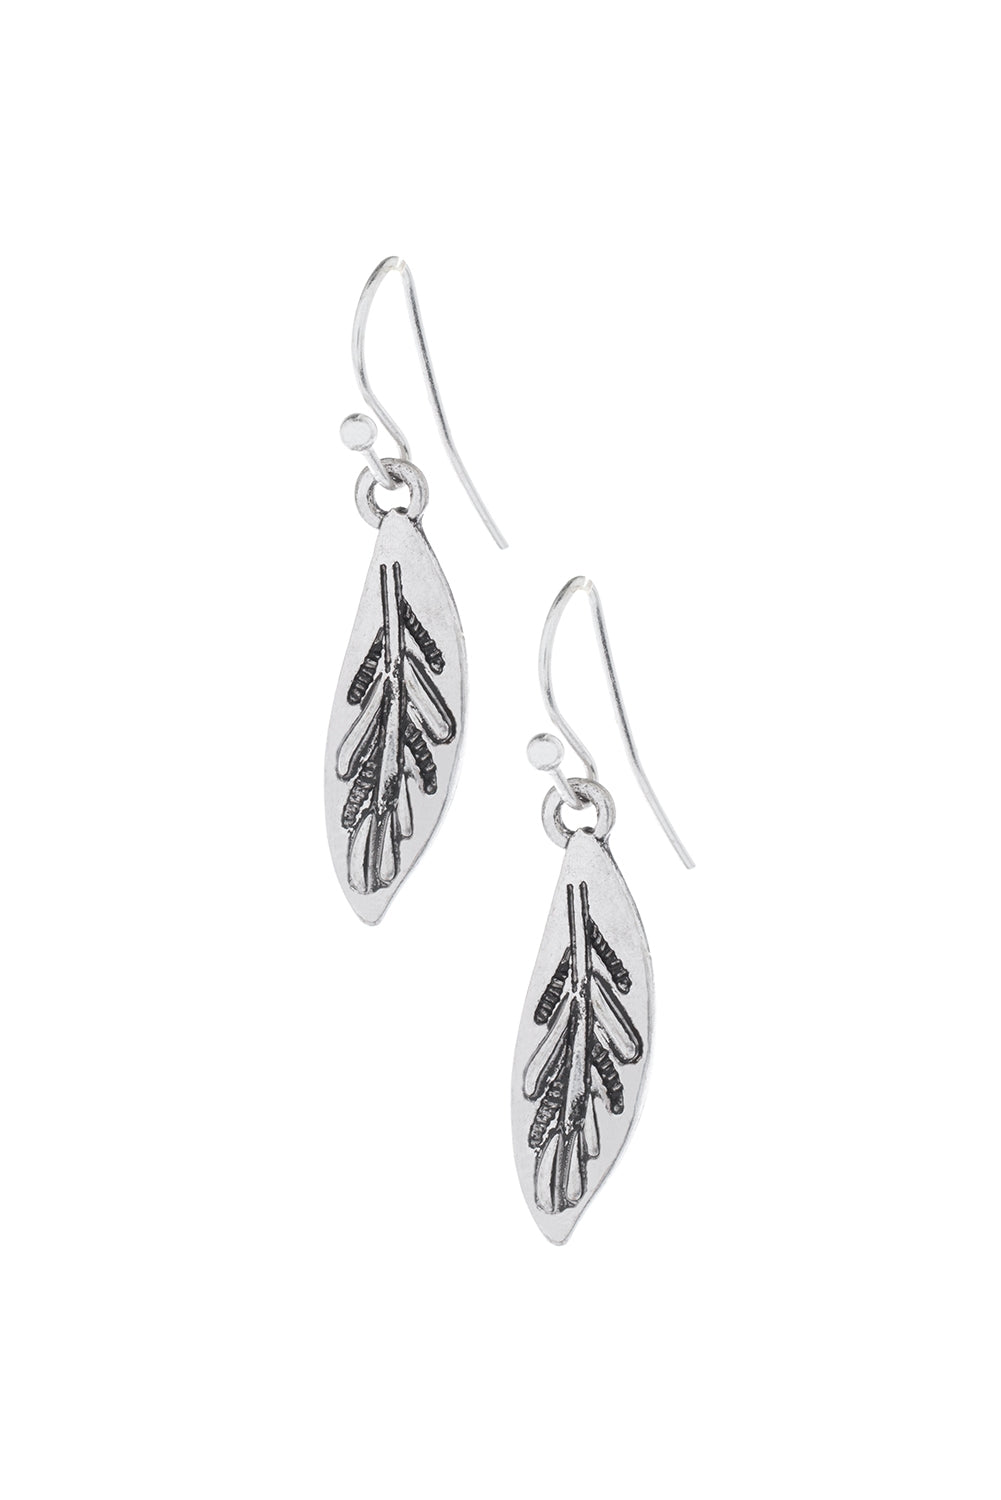 Type 2 Leaves Of Wisdom Earrings